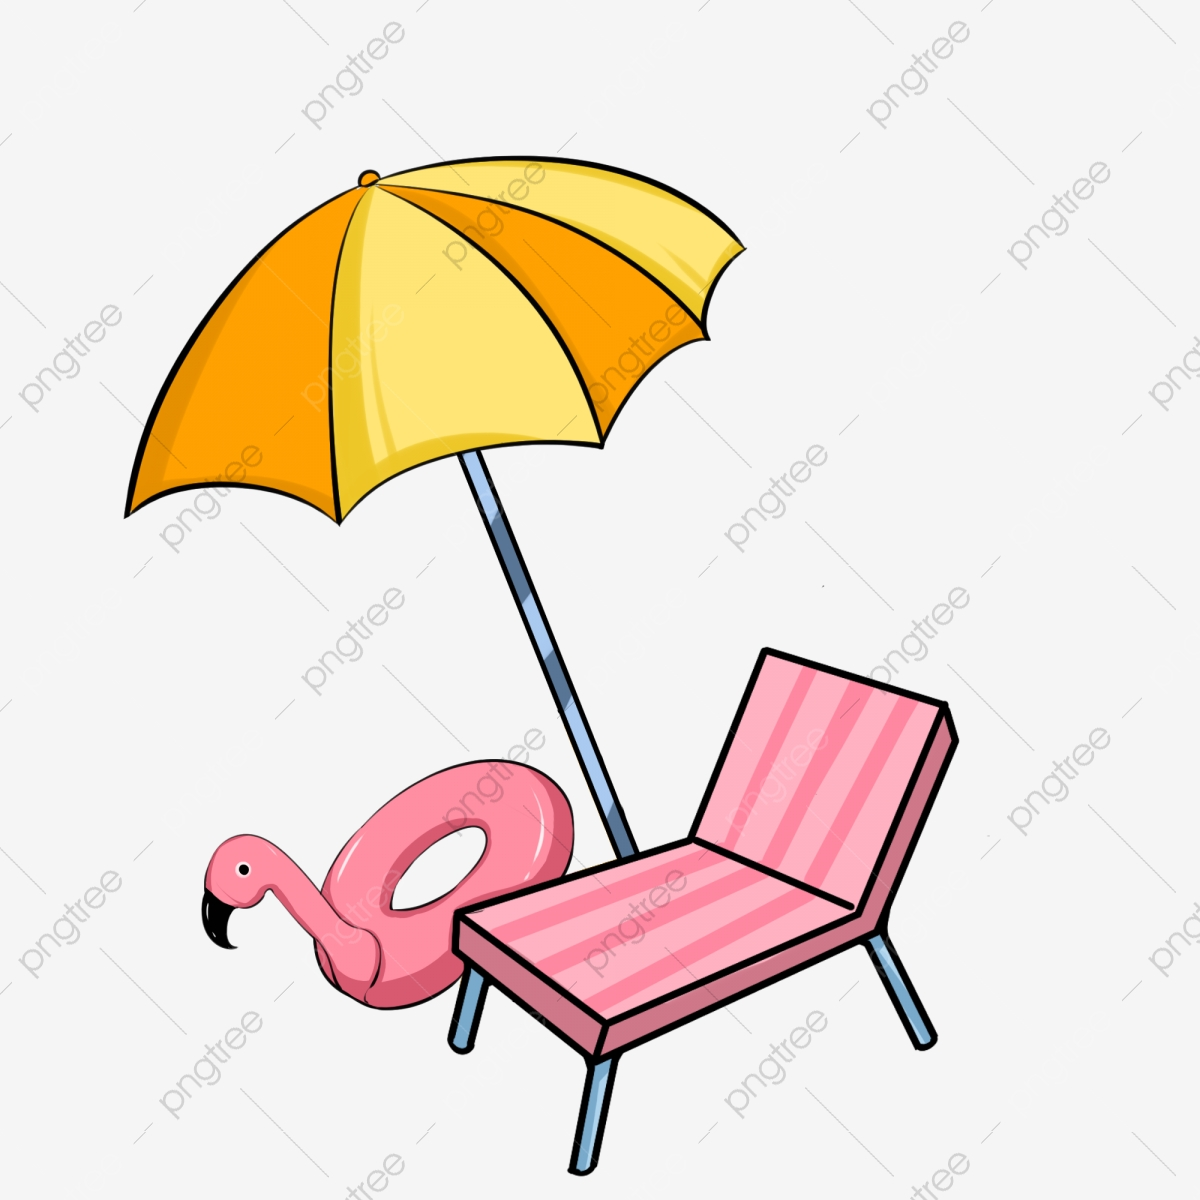 Yellow Umbrella Pink Beach Chair Pink Duck Lifebuoy Beautiful Umbrella Hand Painted Umbrella Umbrella Illustration Yellow Umbrella Png Transparent Clipart Image And Psd File For Free Download